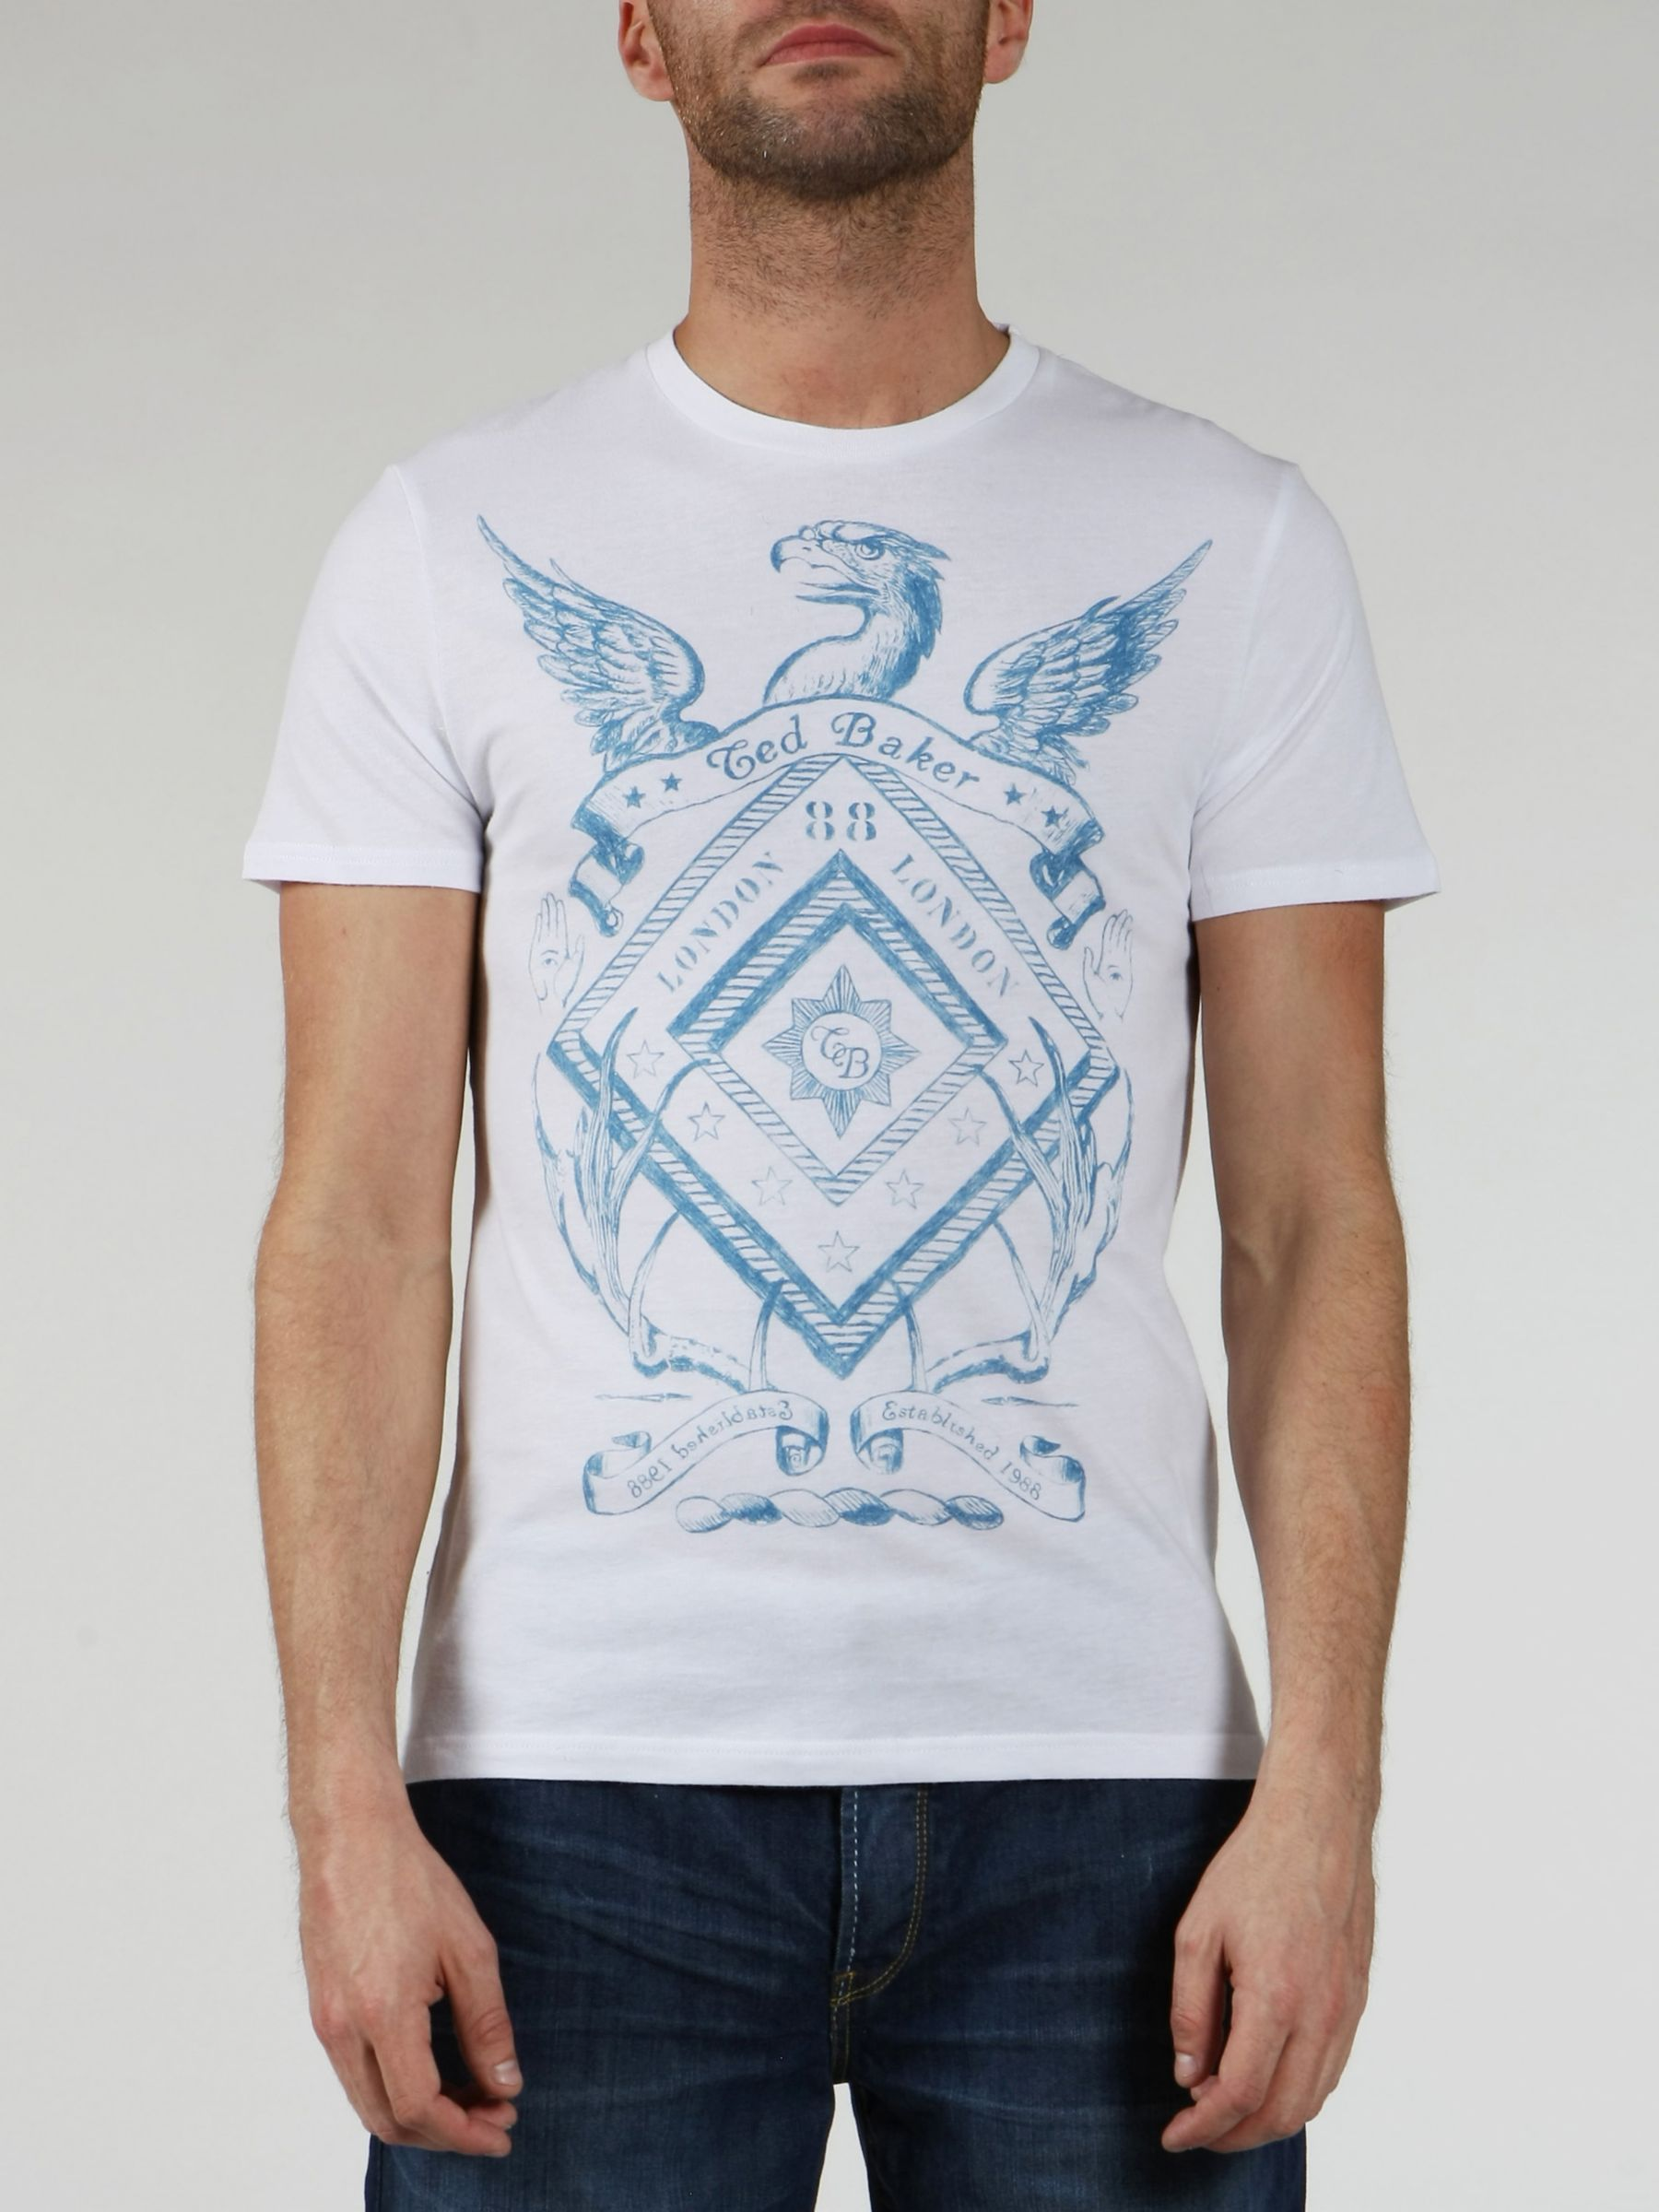 Short-Sleeve Graphic T-Shirt, White